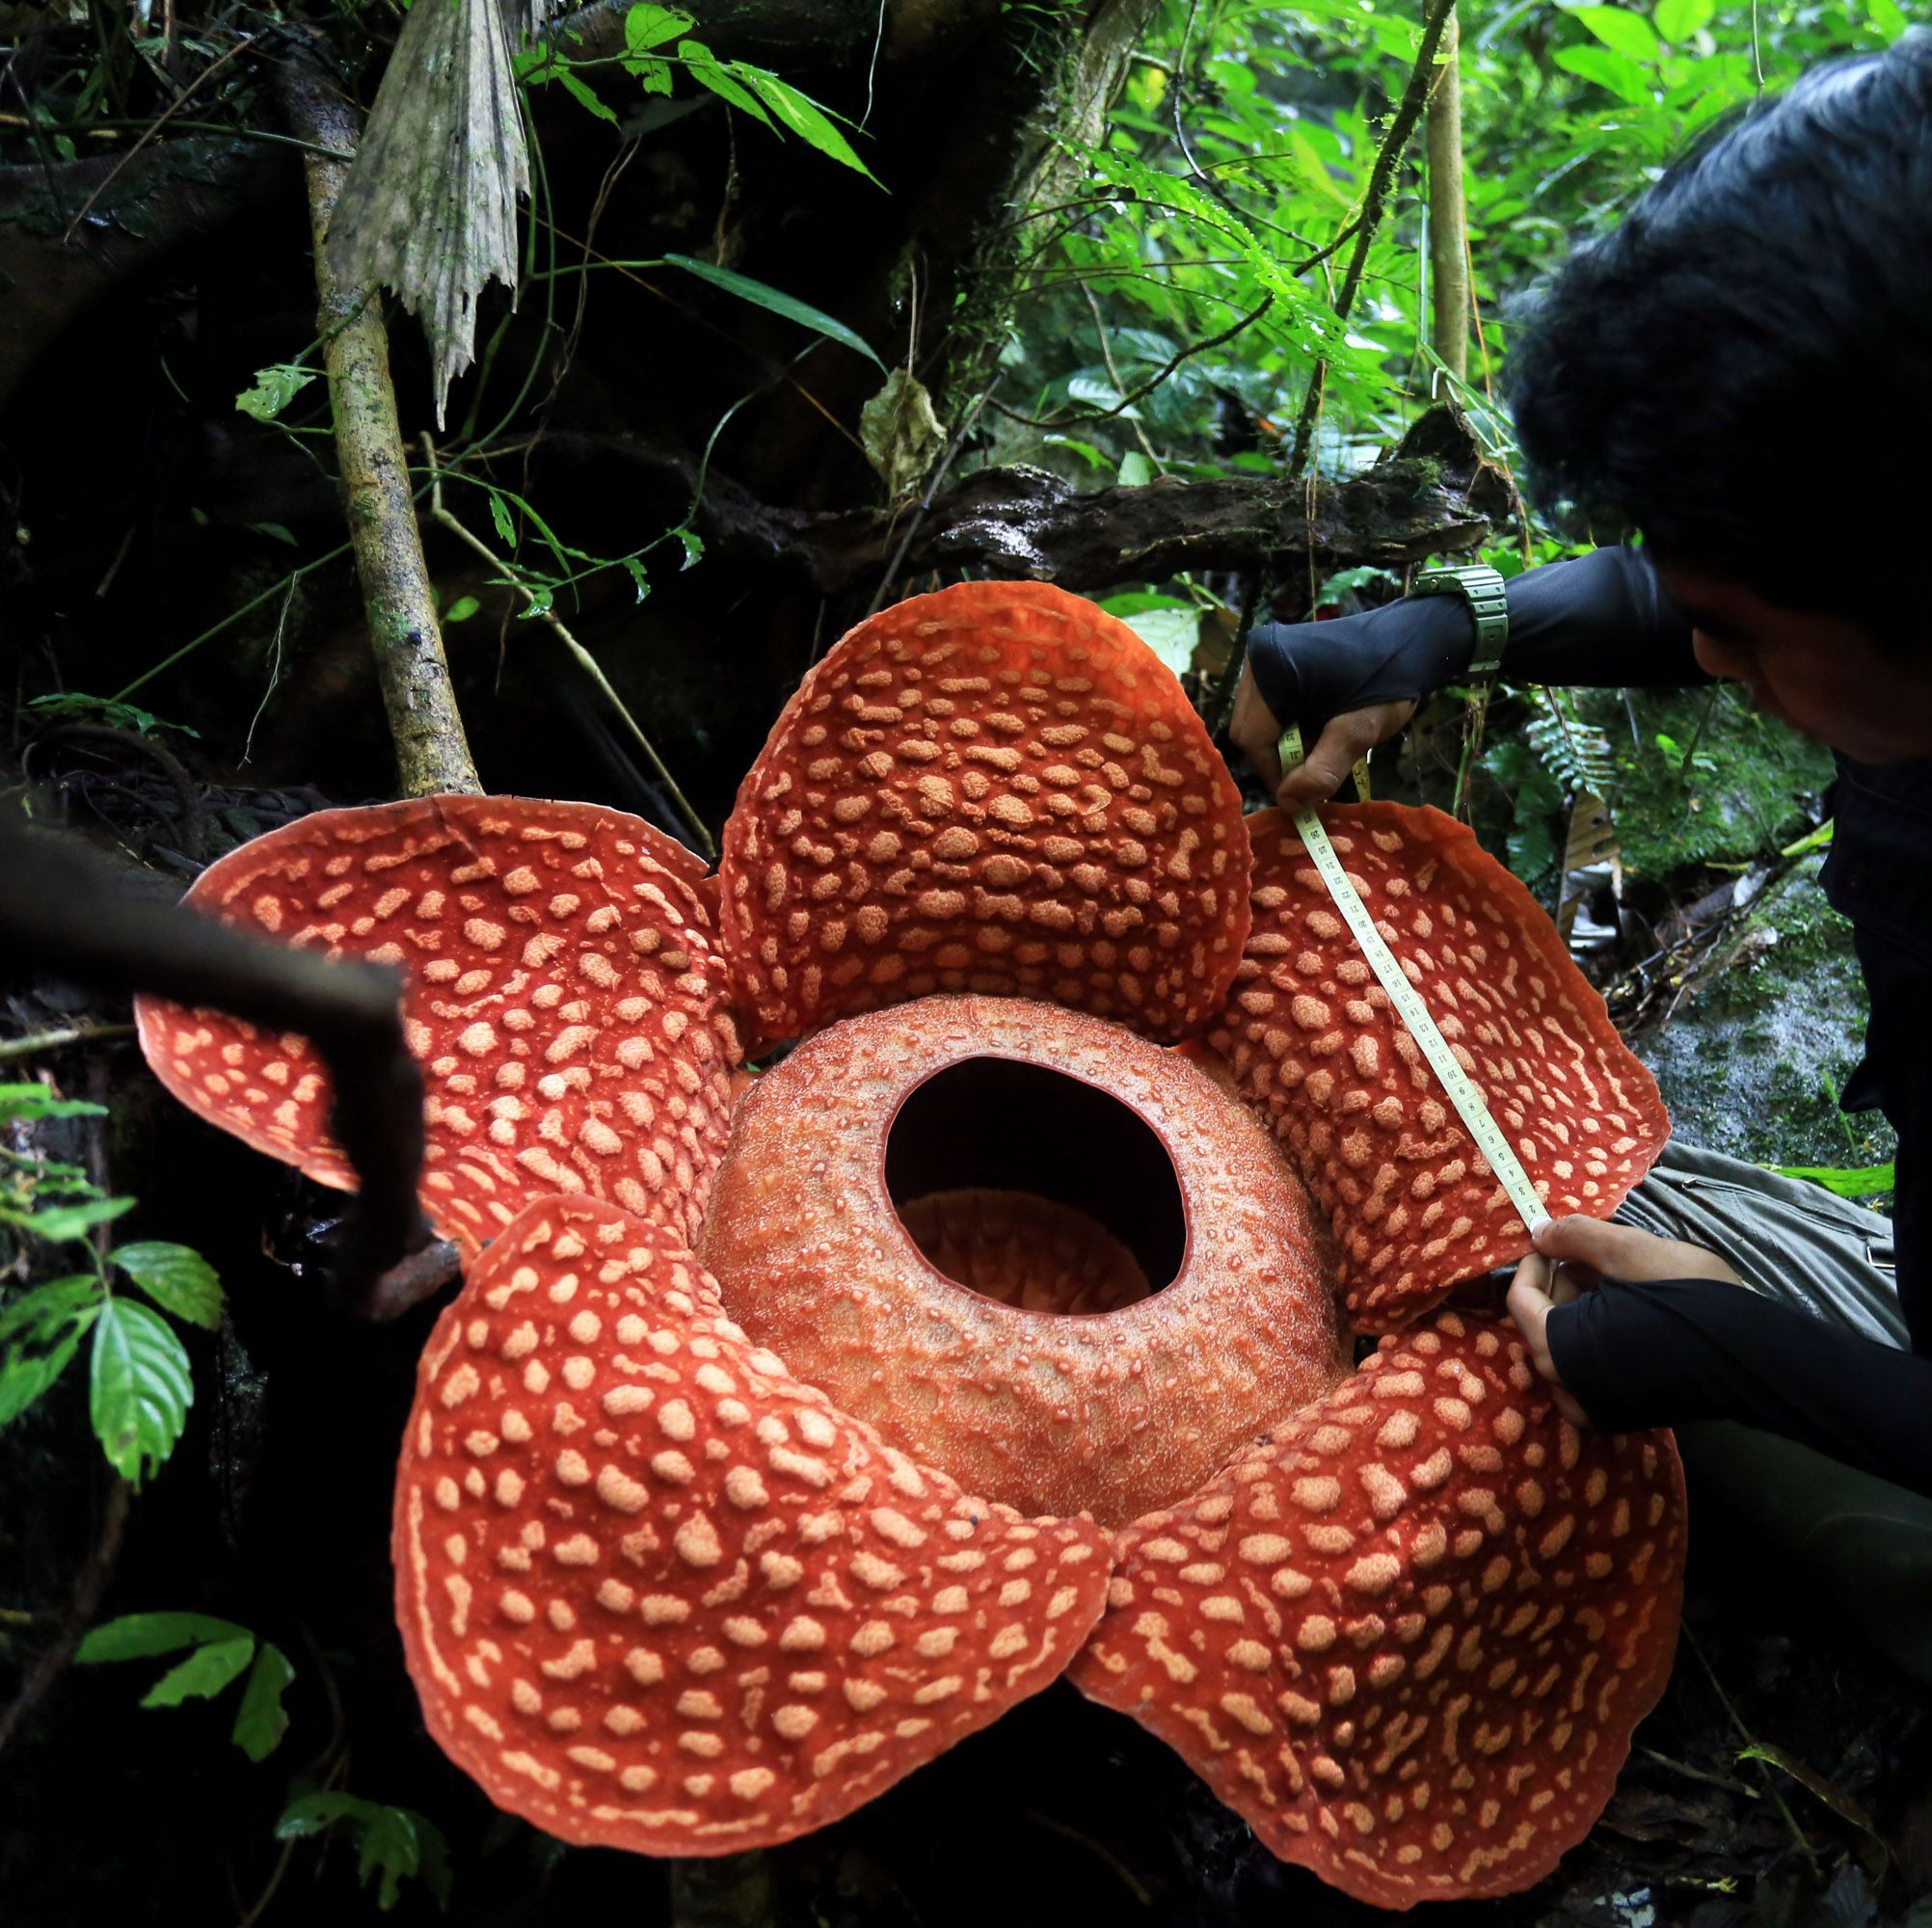 The World's Largest Flower Absolutely Reeks in 2020